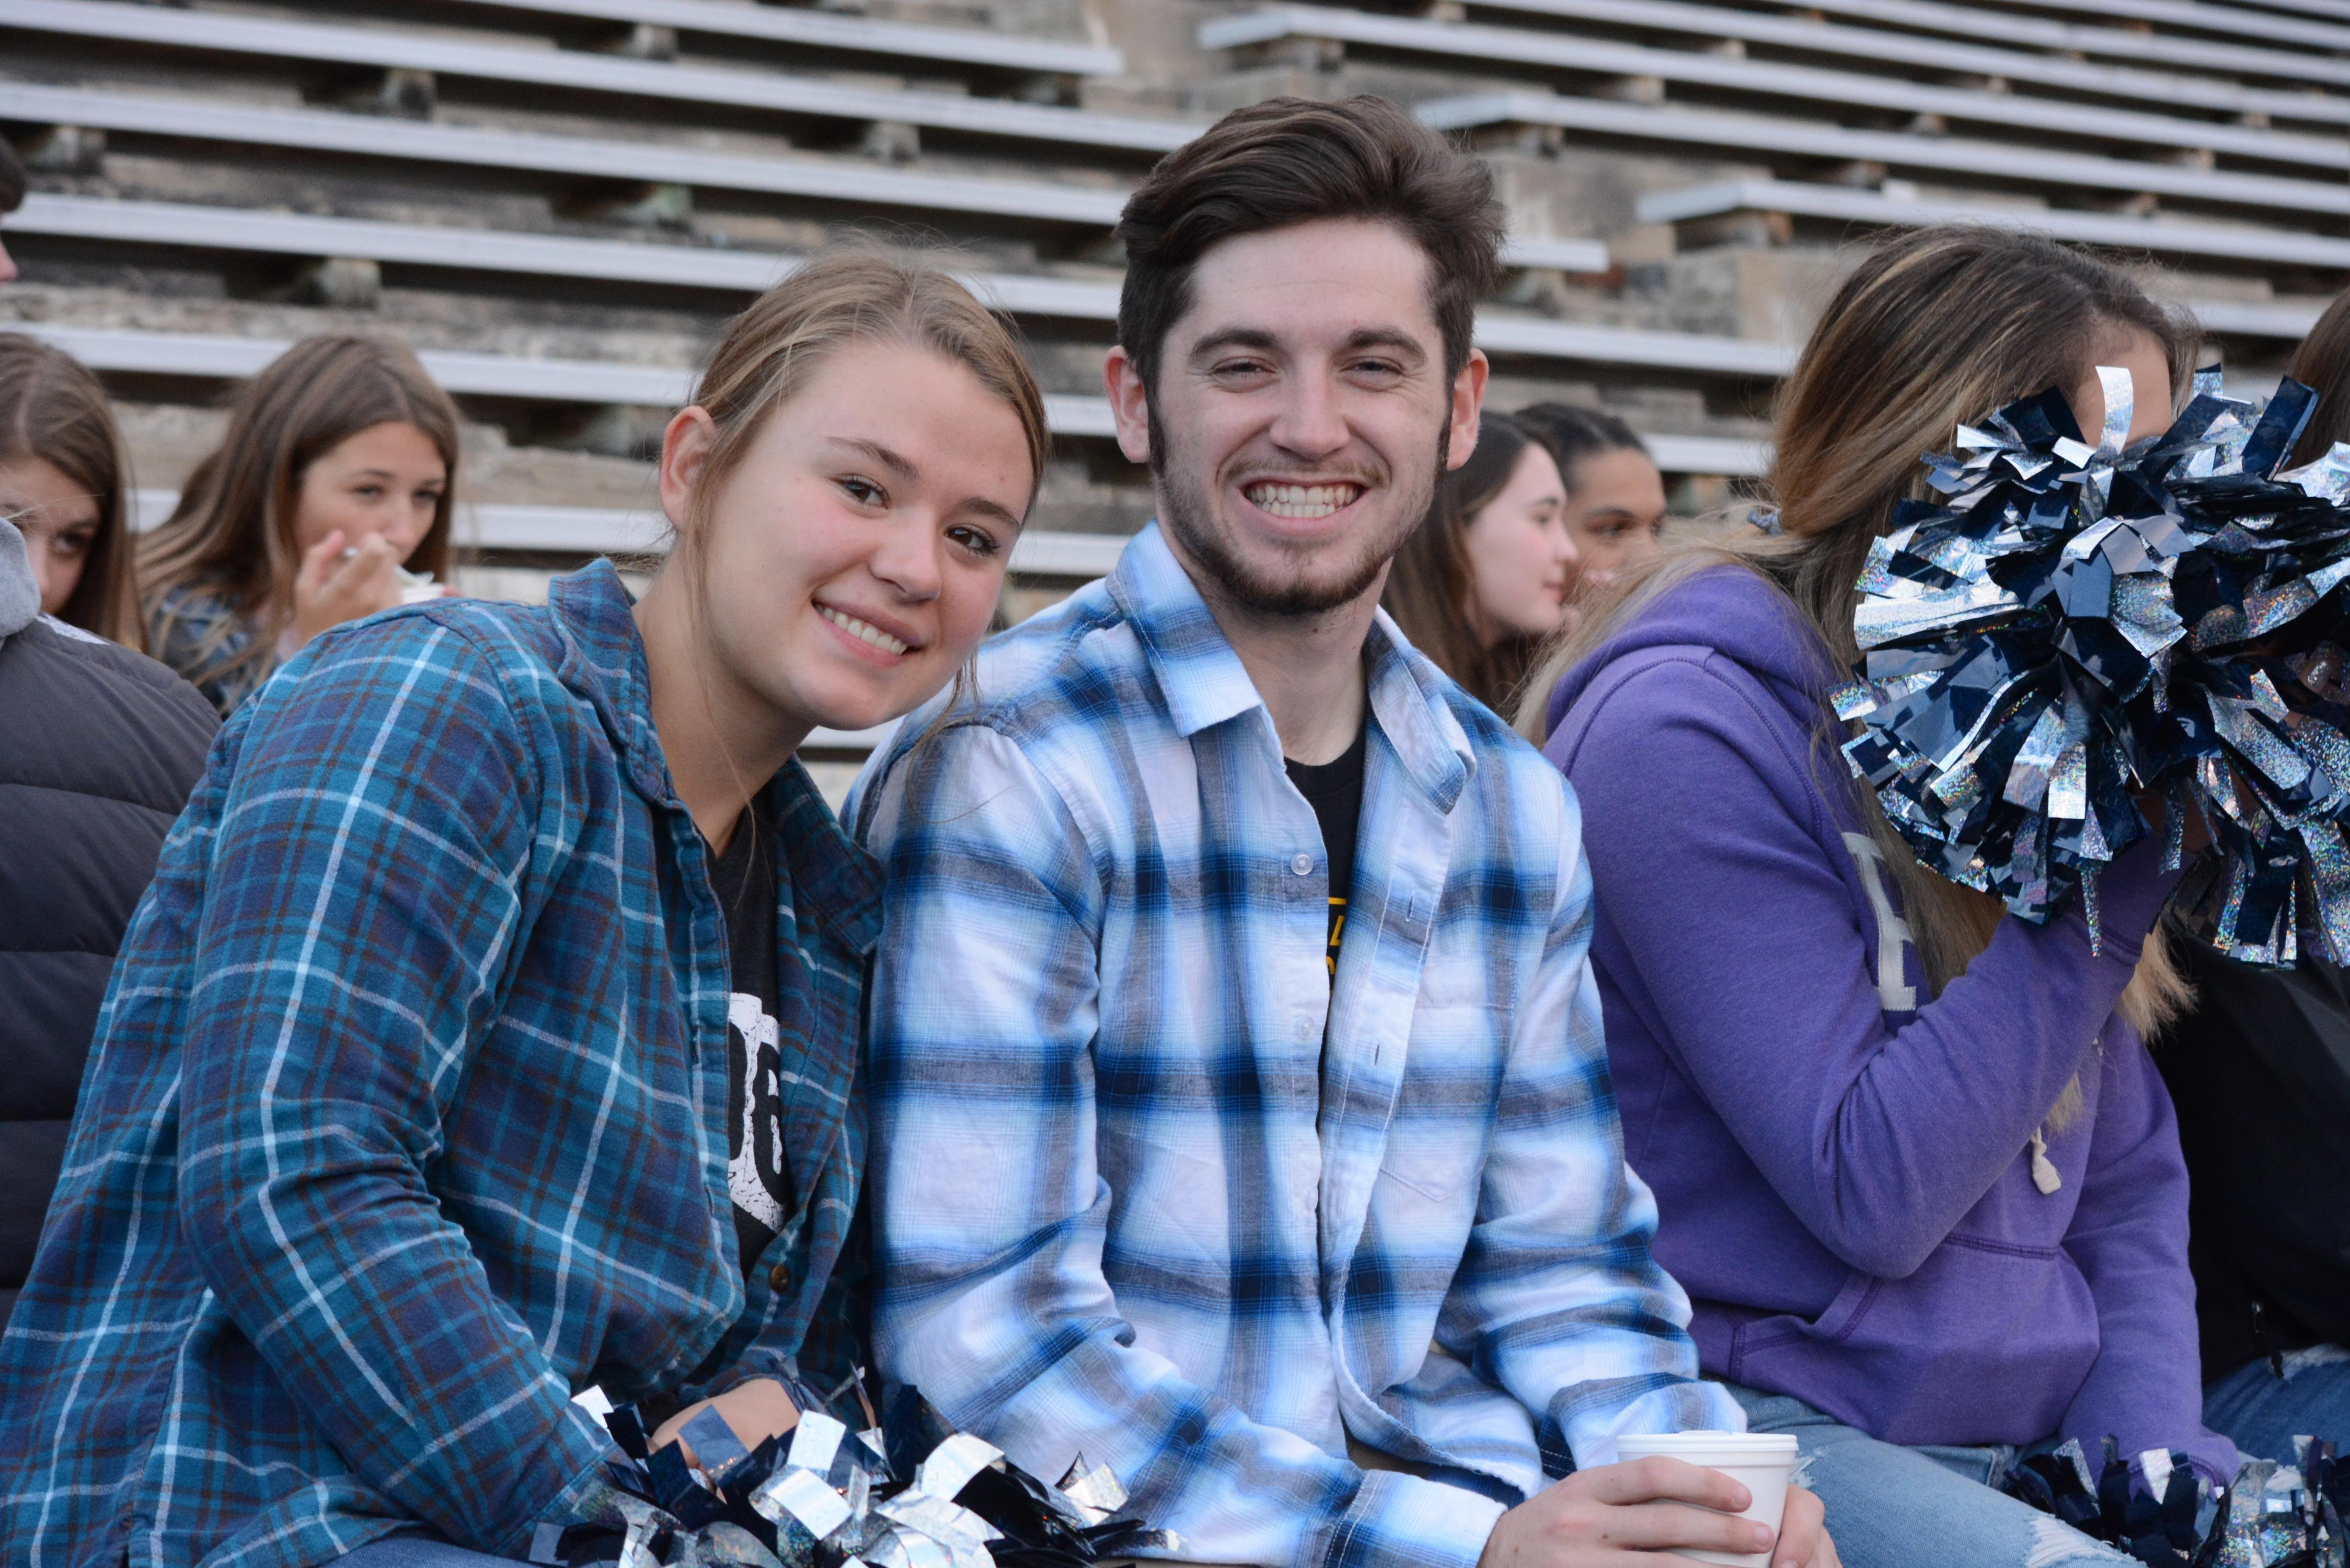 Students enjoying the football game